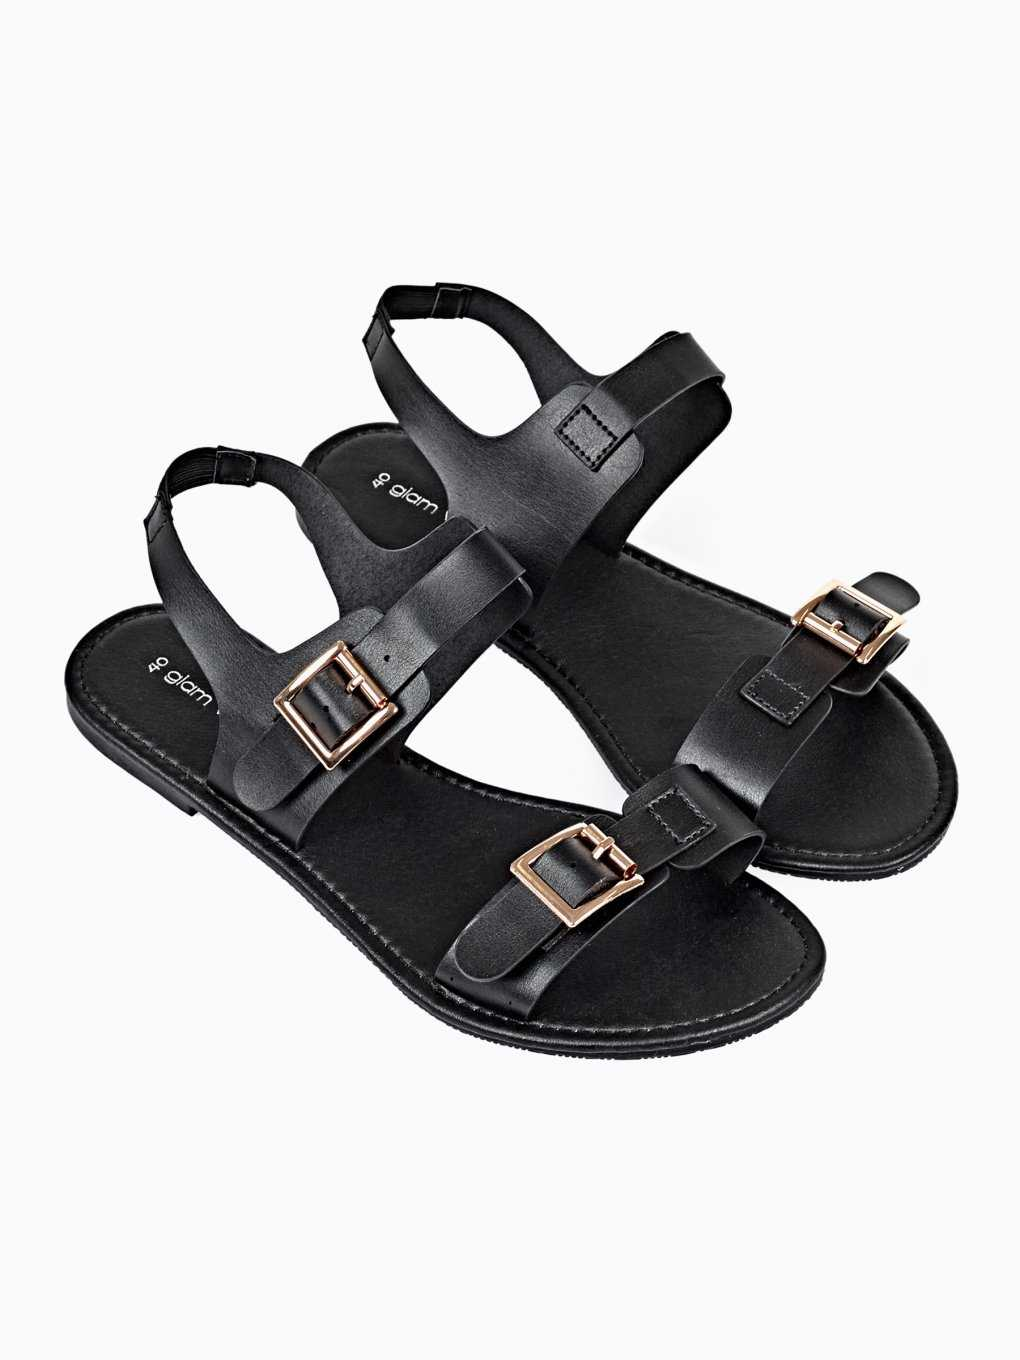 FLAT SANDALS WITH BUCKLE DETAILS